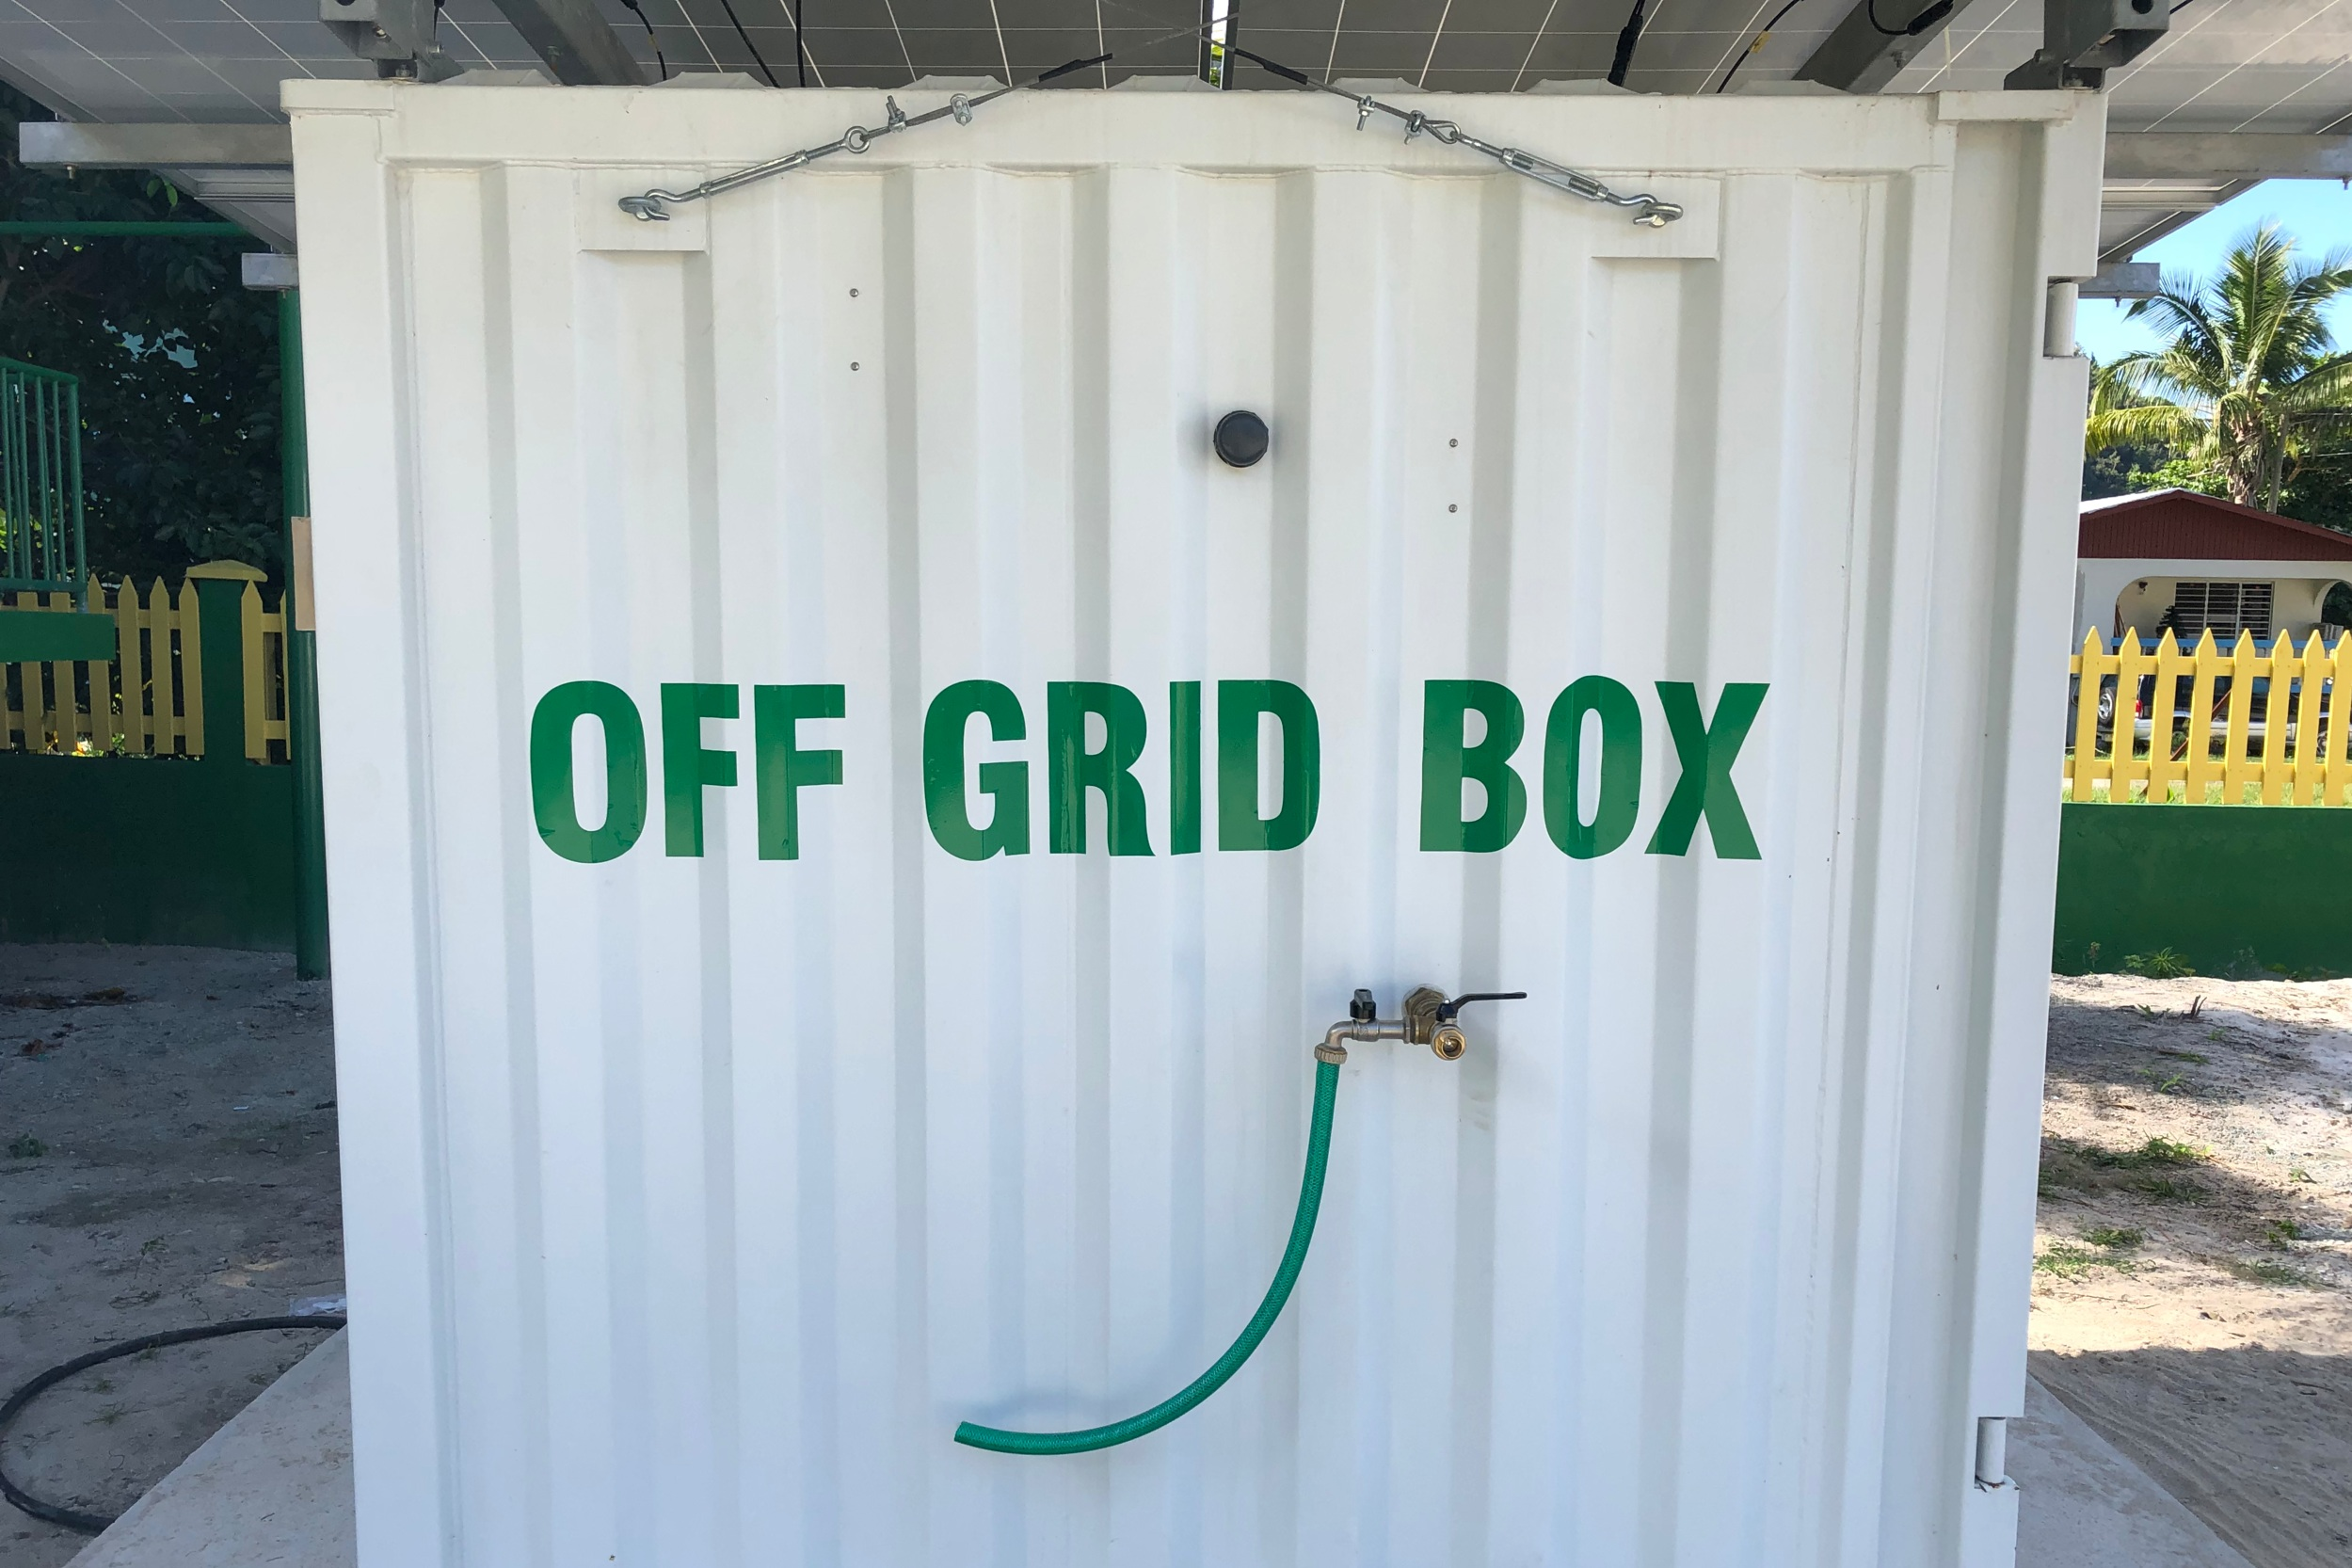 Virgin Islands Off Grid Water Electricity Box